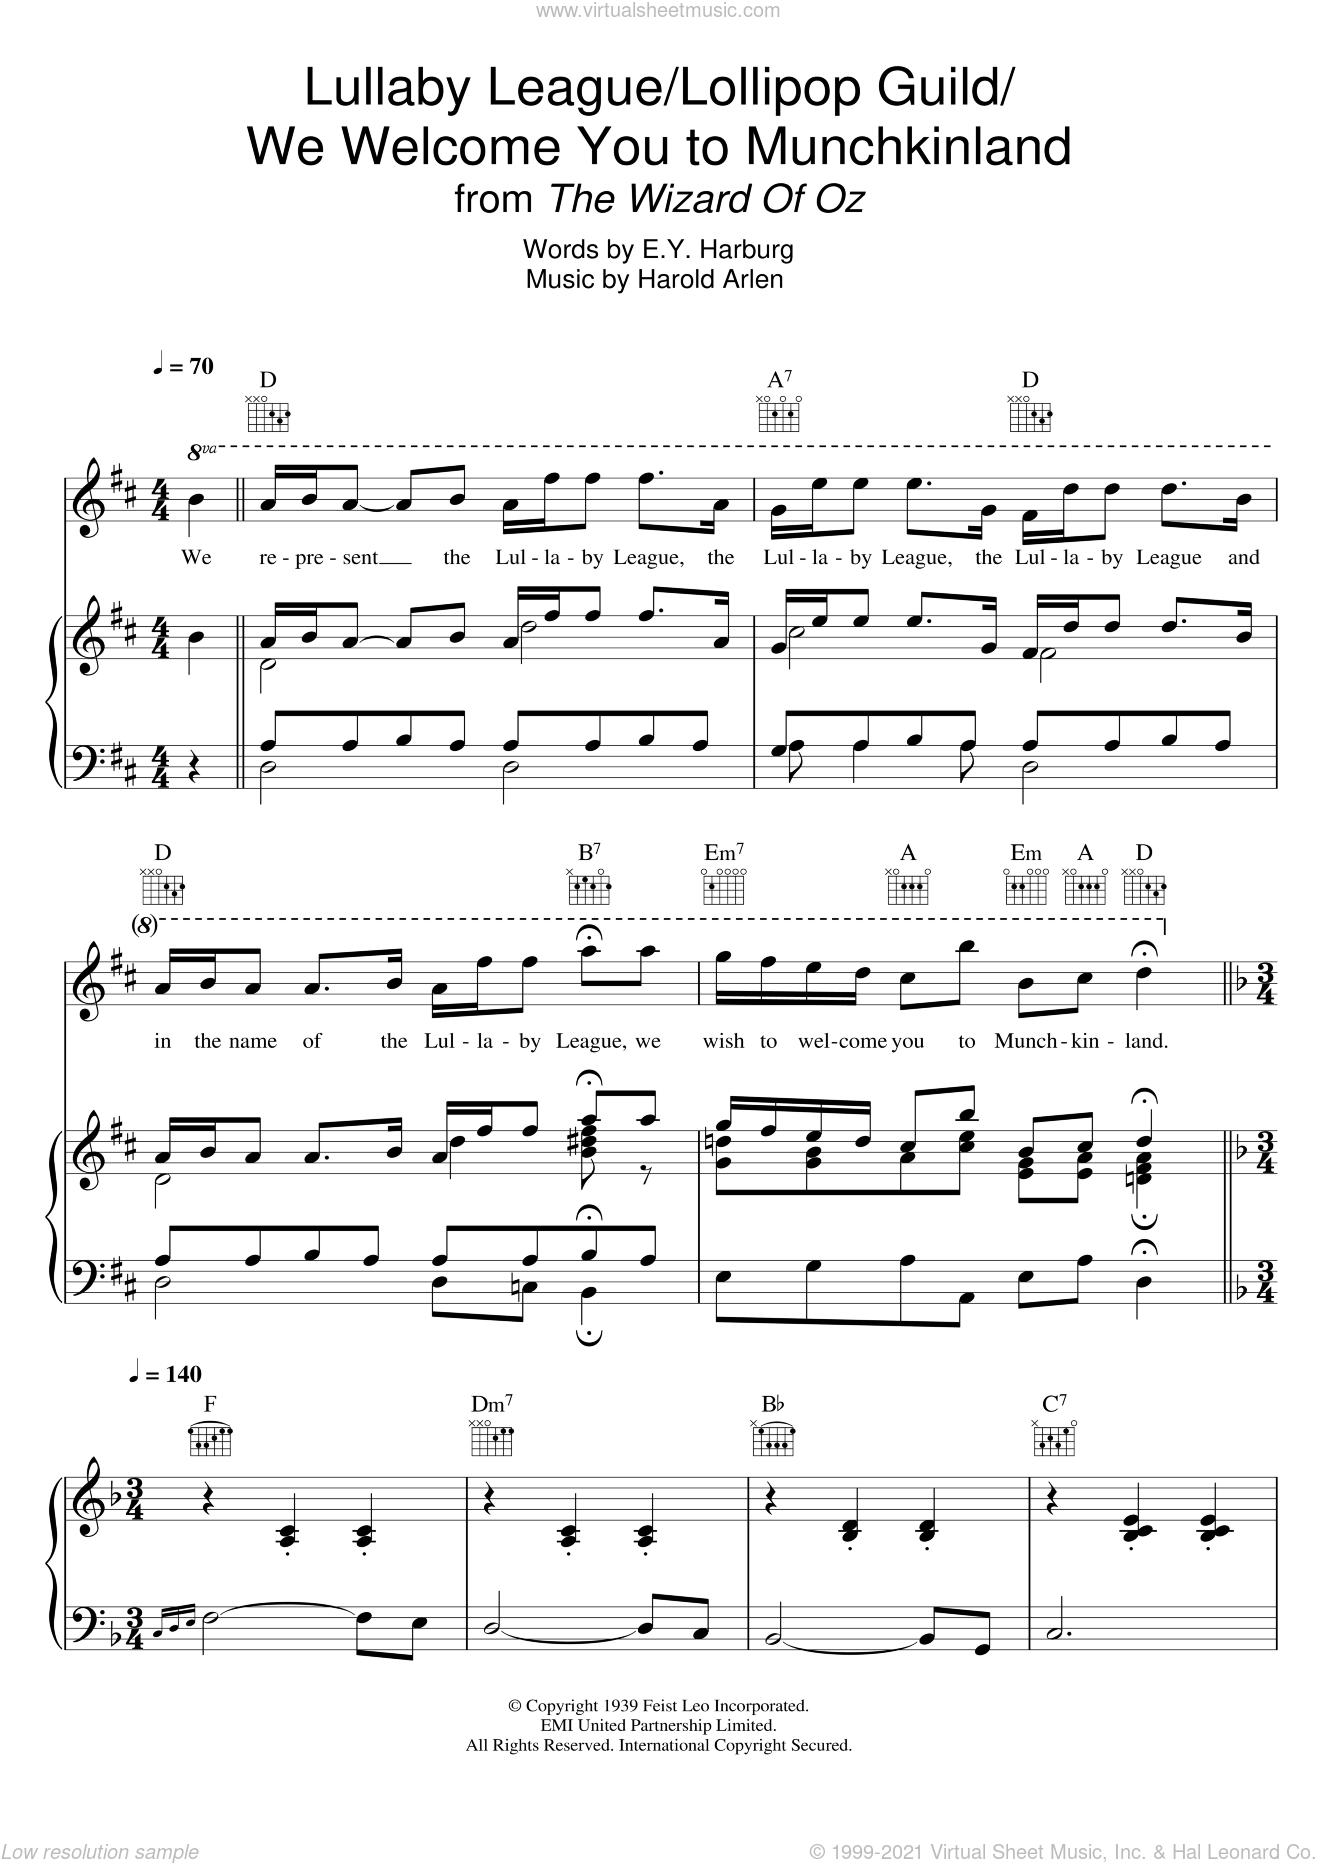 Lullaby League/Lollipop Guild/We Welcome You To Munchkinland (from 'The Wizard Of Oz') sheet music for voice, piano or guitar by E.Y. Harburg